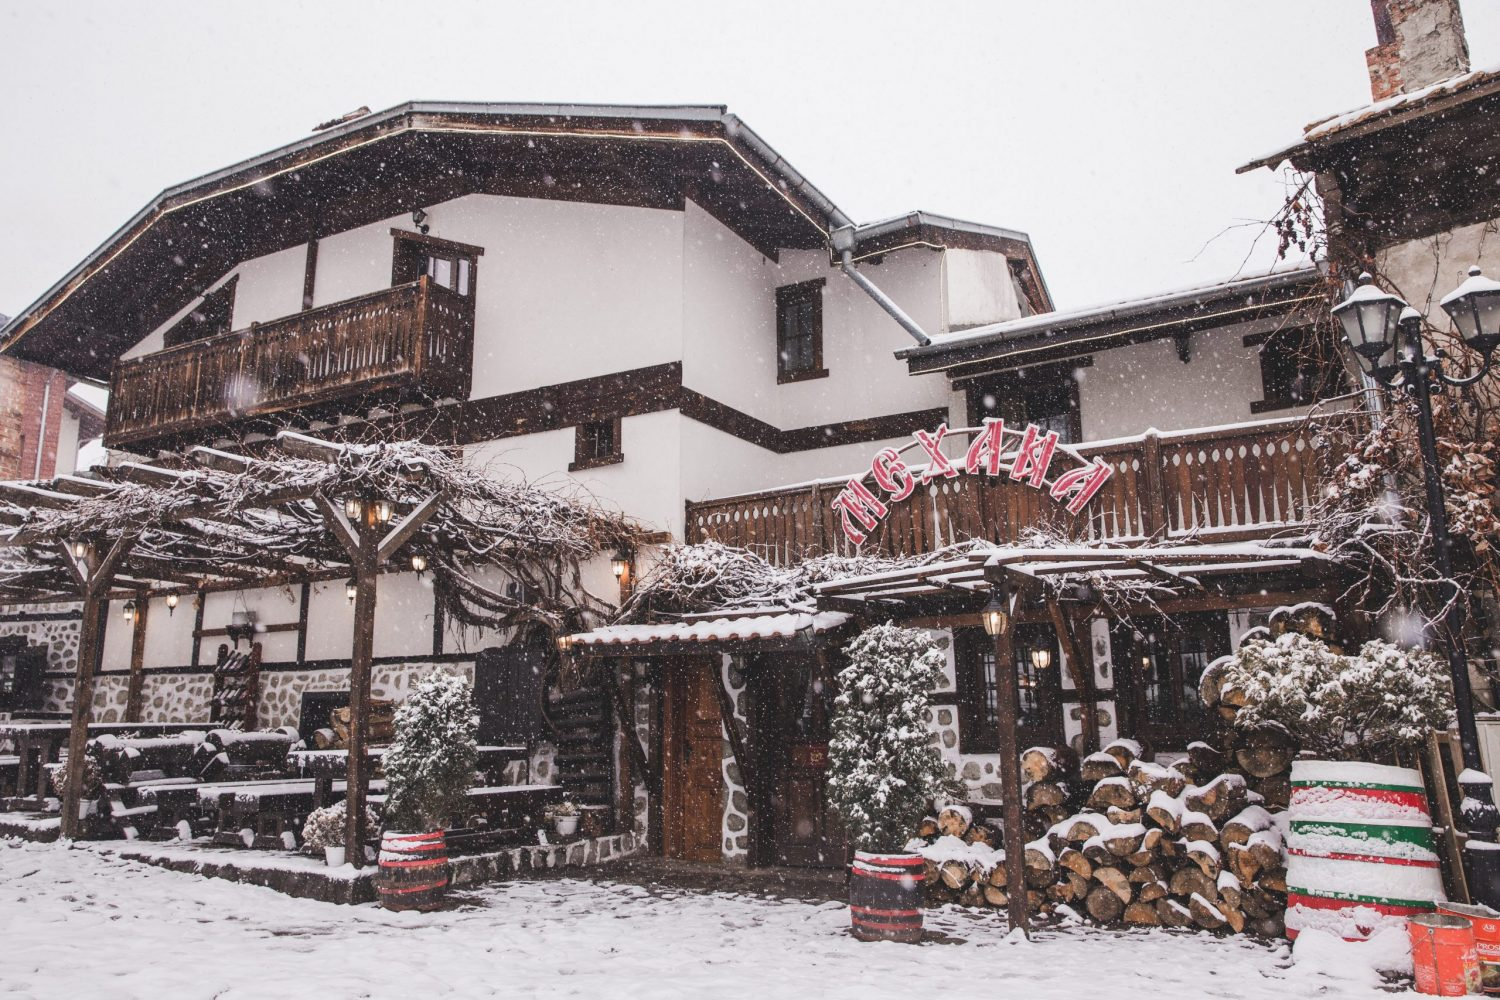 Mexana in Bansko, Bulgaria in the snow